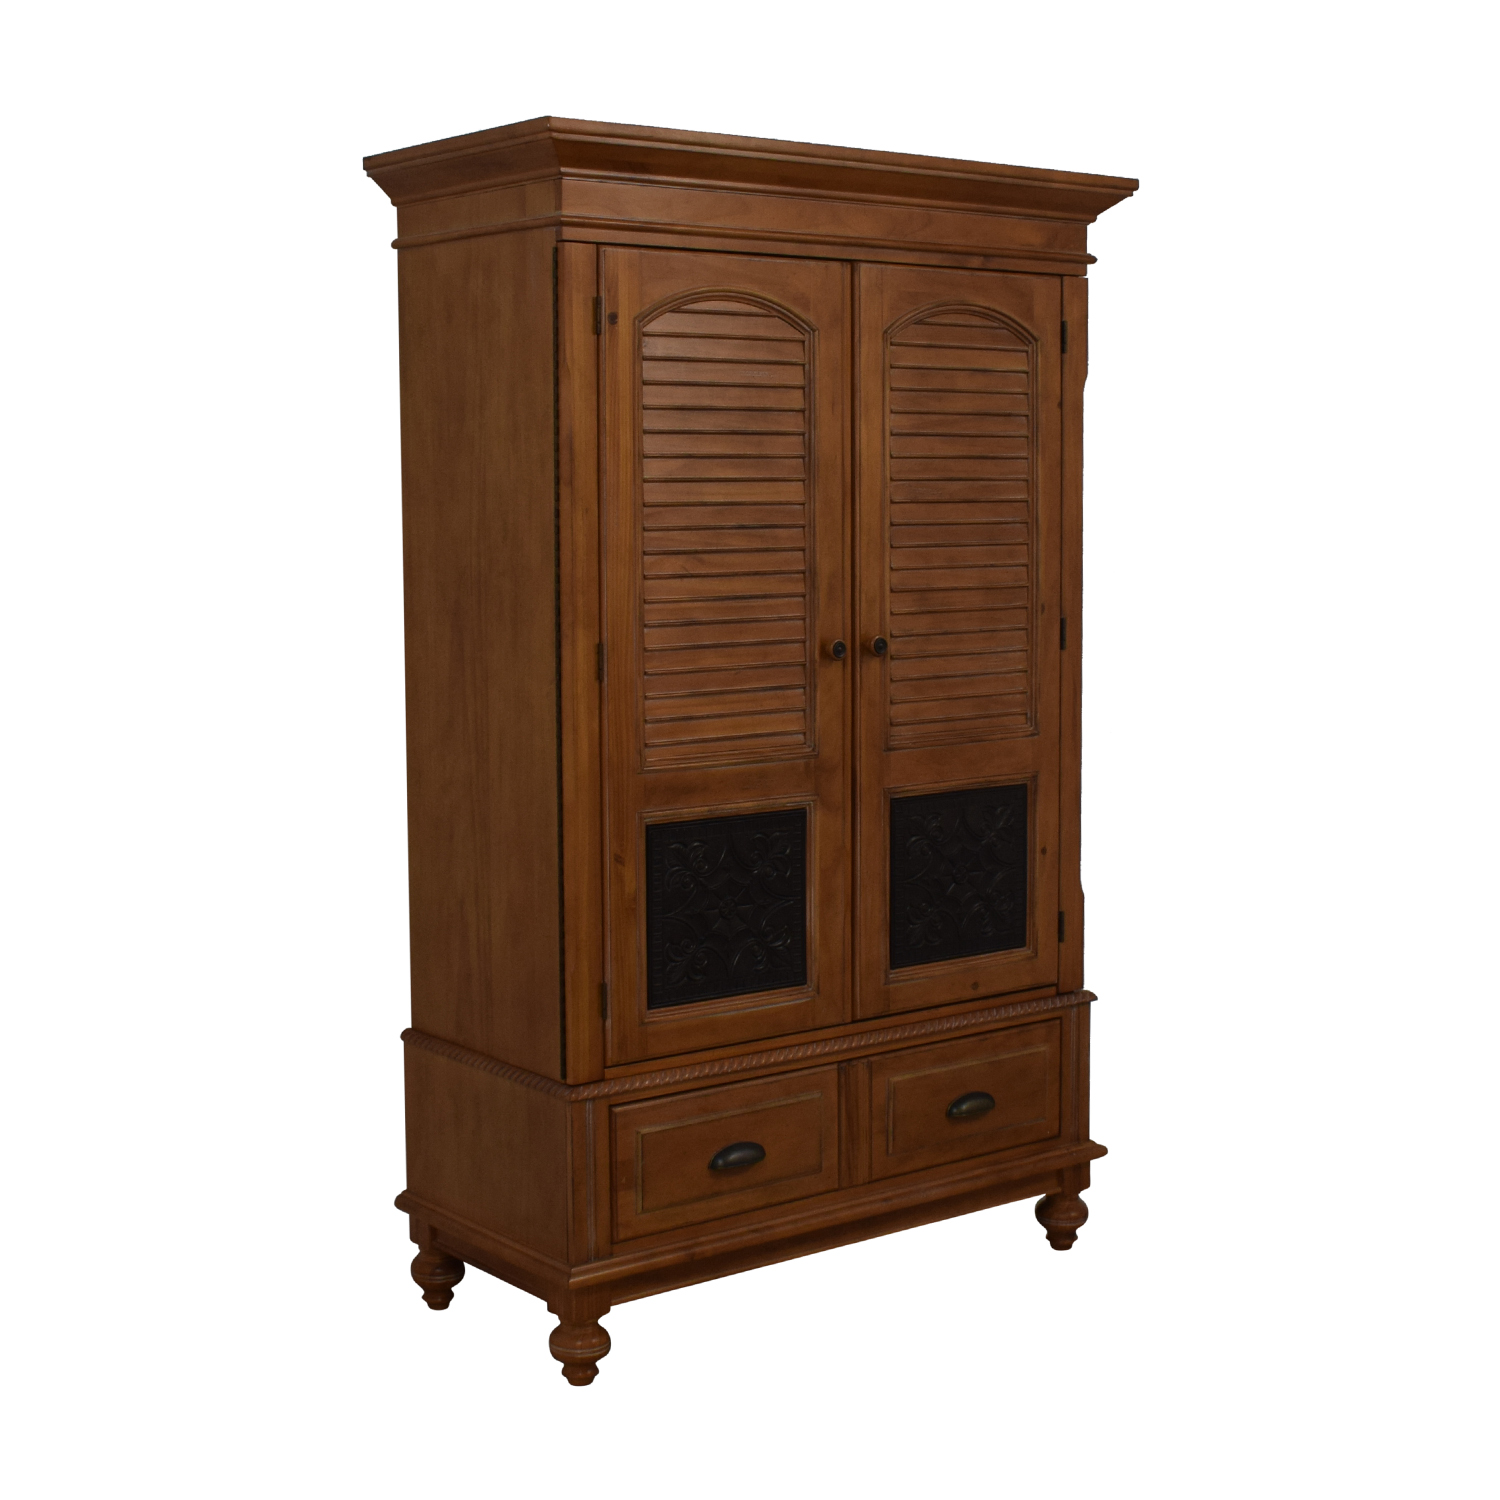 A.R.T. Furniture A.R.T. Furniture Four-Drawer Wood Wardrobe Armoire for sale